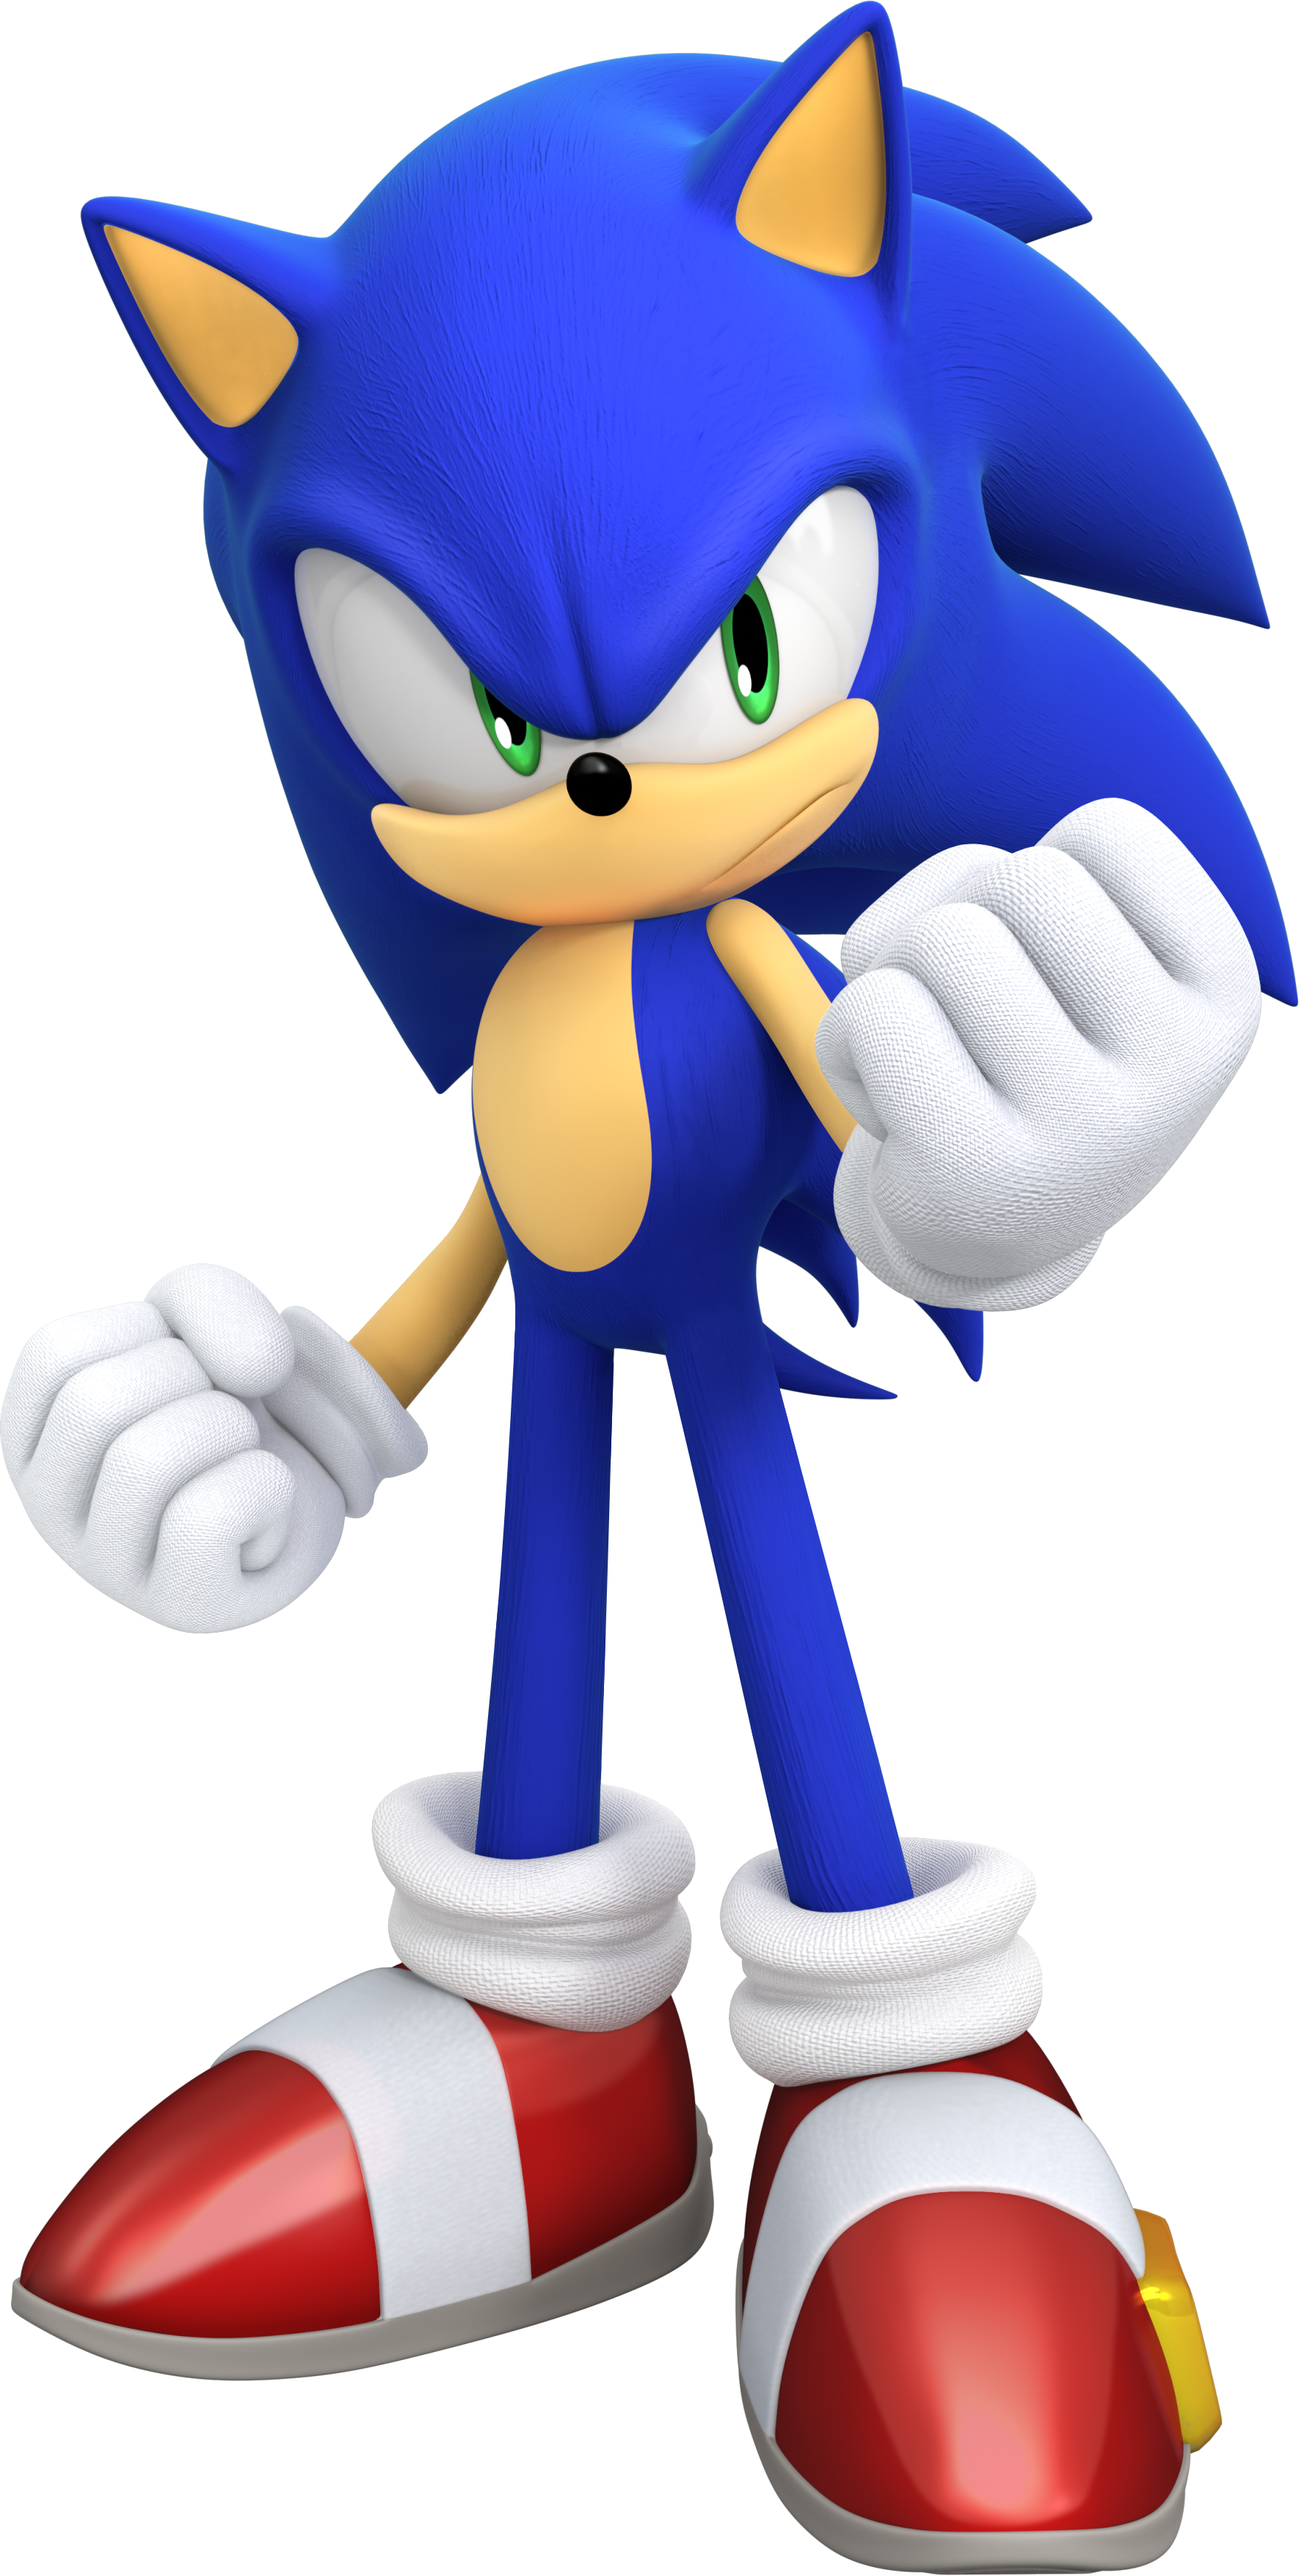 Sonic the Hedgehog | Heroes and villians Wiki | Fandom